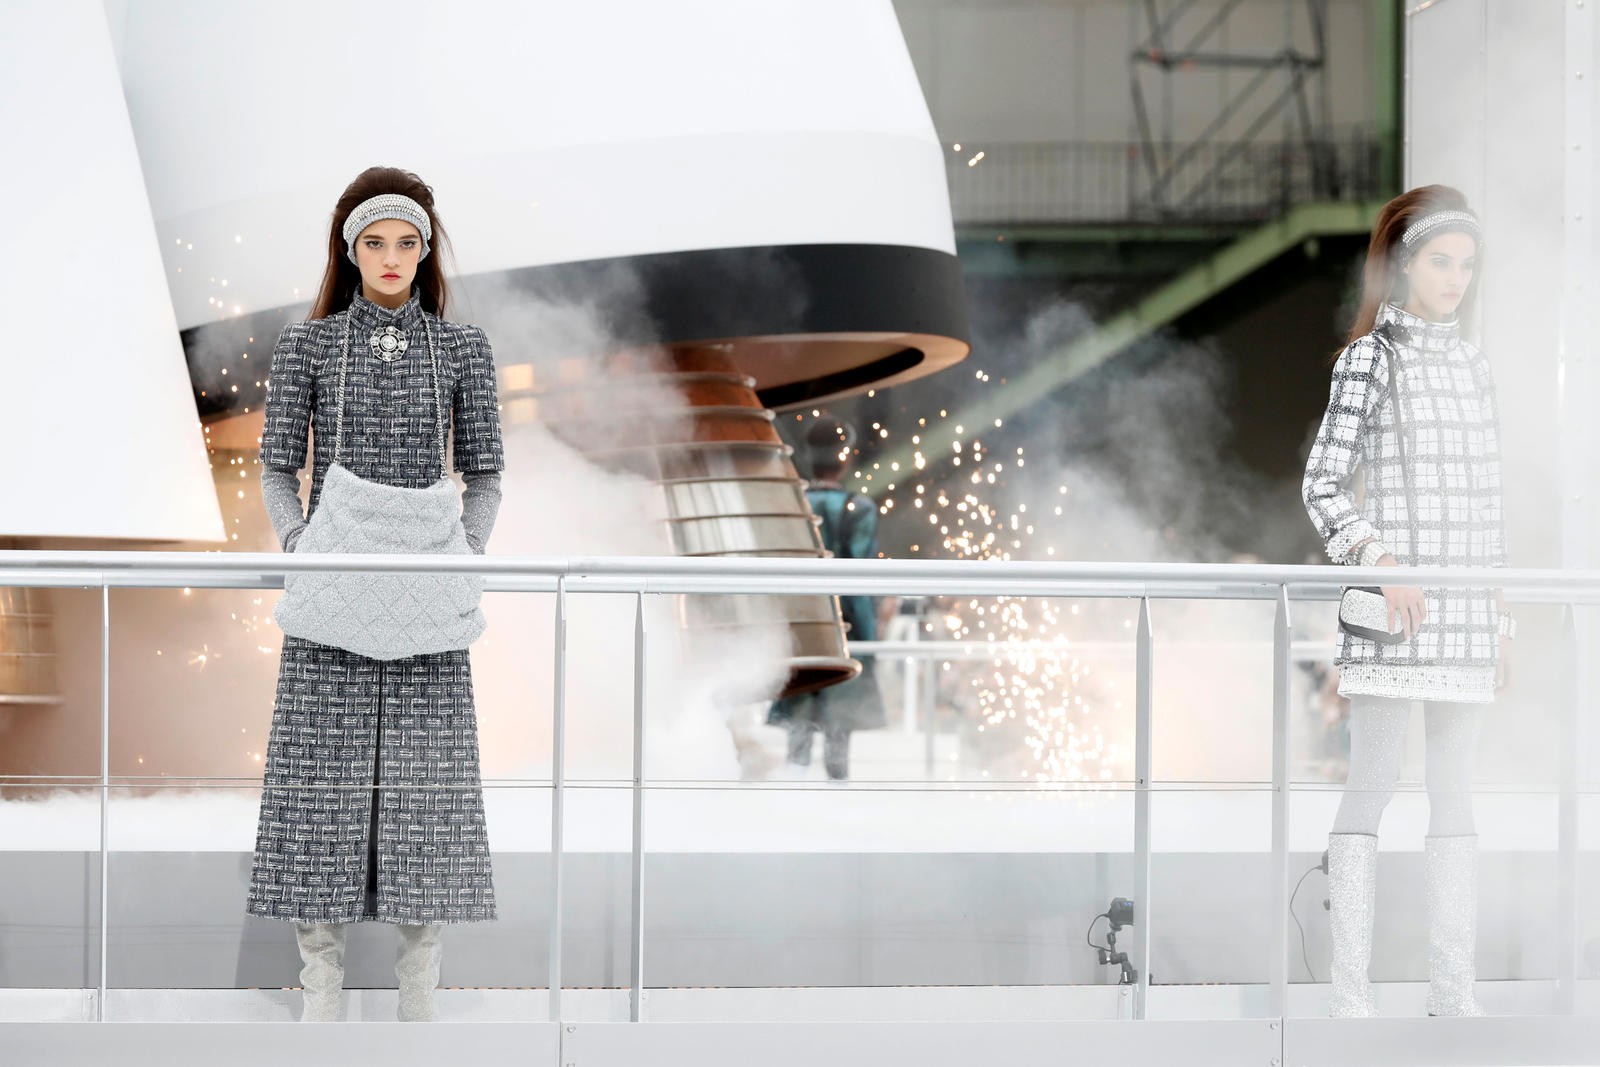 Models present creations by German designer Karl Lagerfeld as part of his Fall/Winter 2017-2018 women's ready-to-wear collection for fashion house Chanel during Fashion Week in Paris